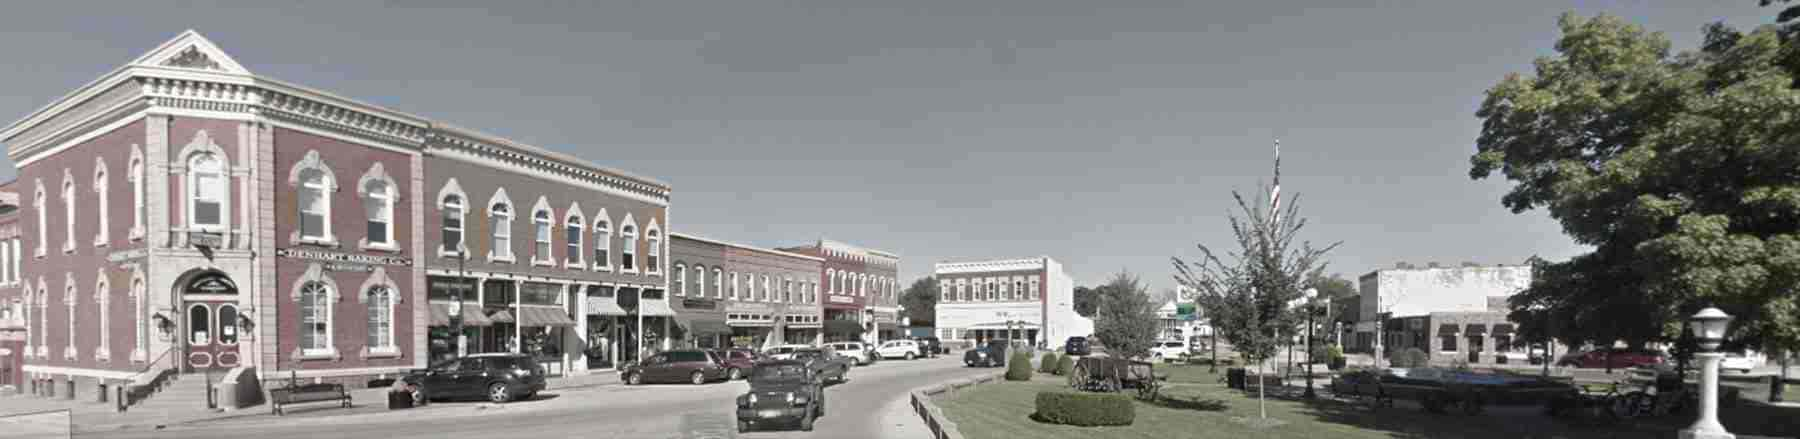 View of the Square in the town of Washington, IL where Essig Law Office is located